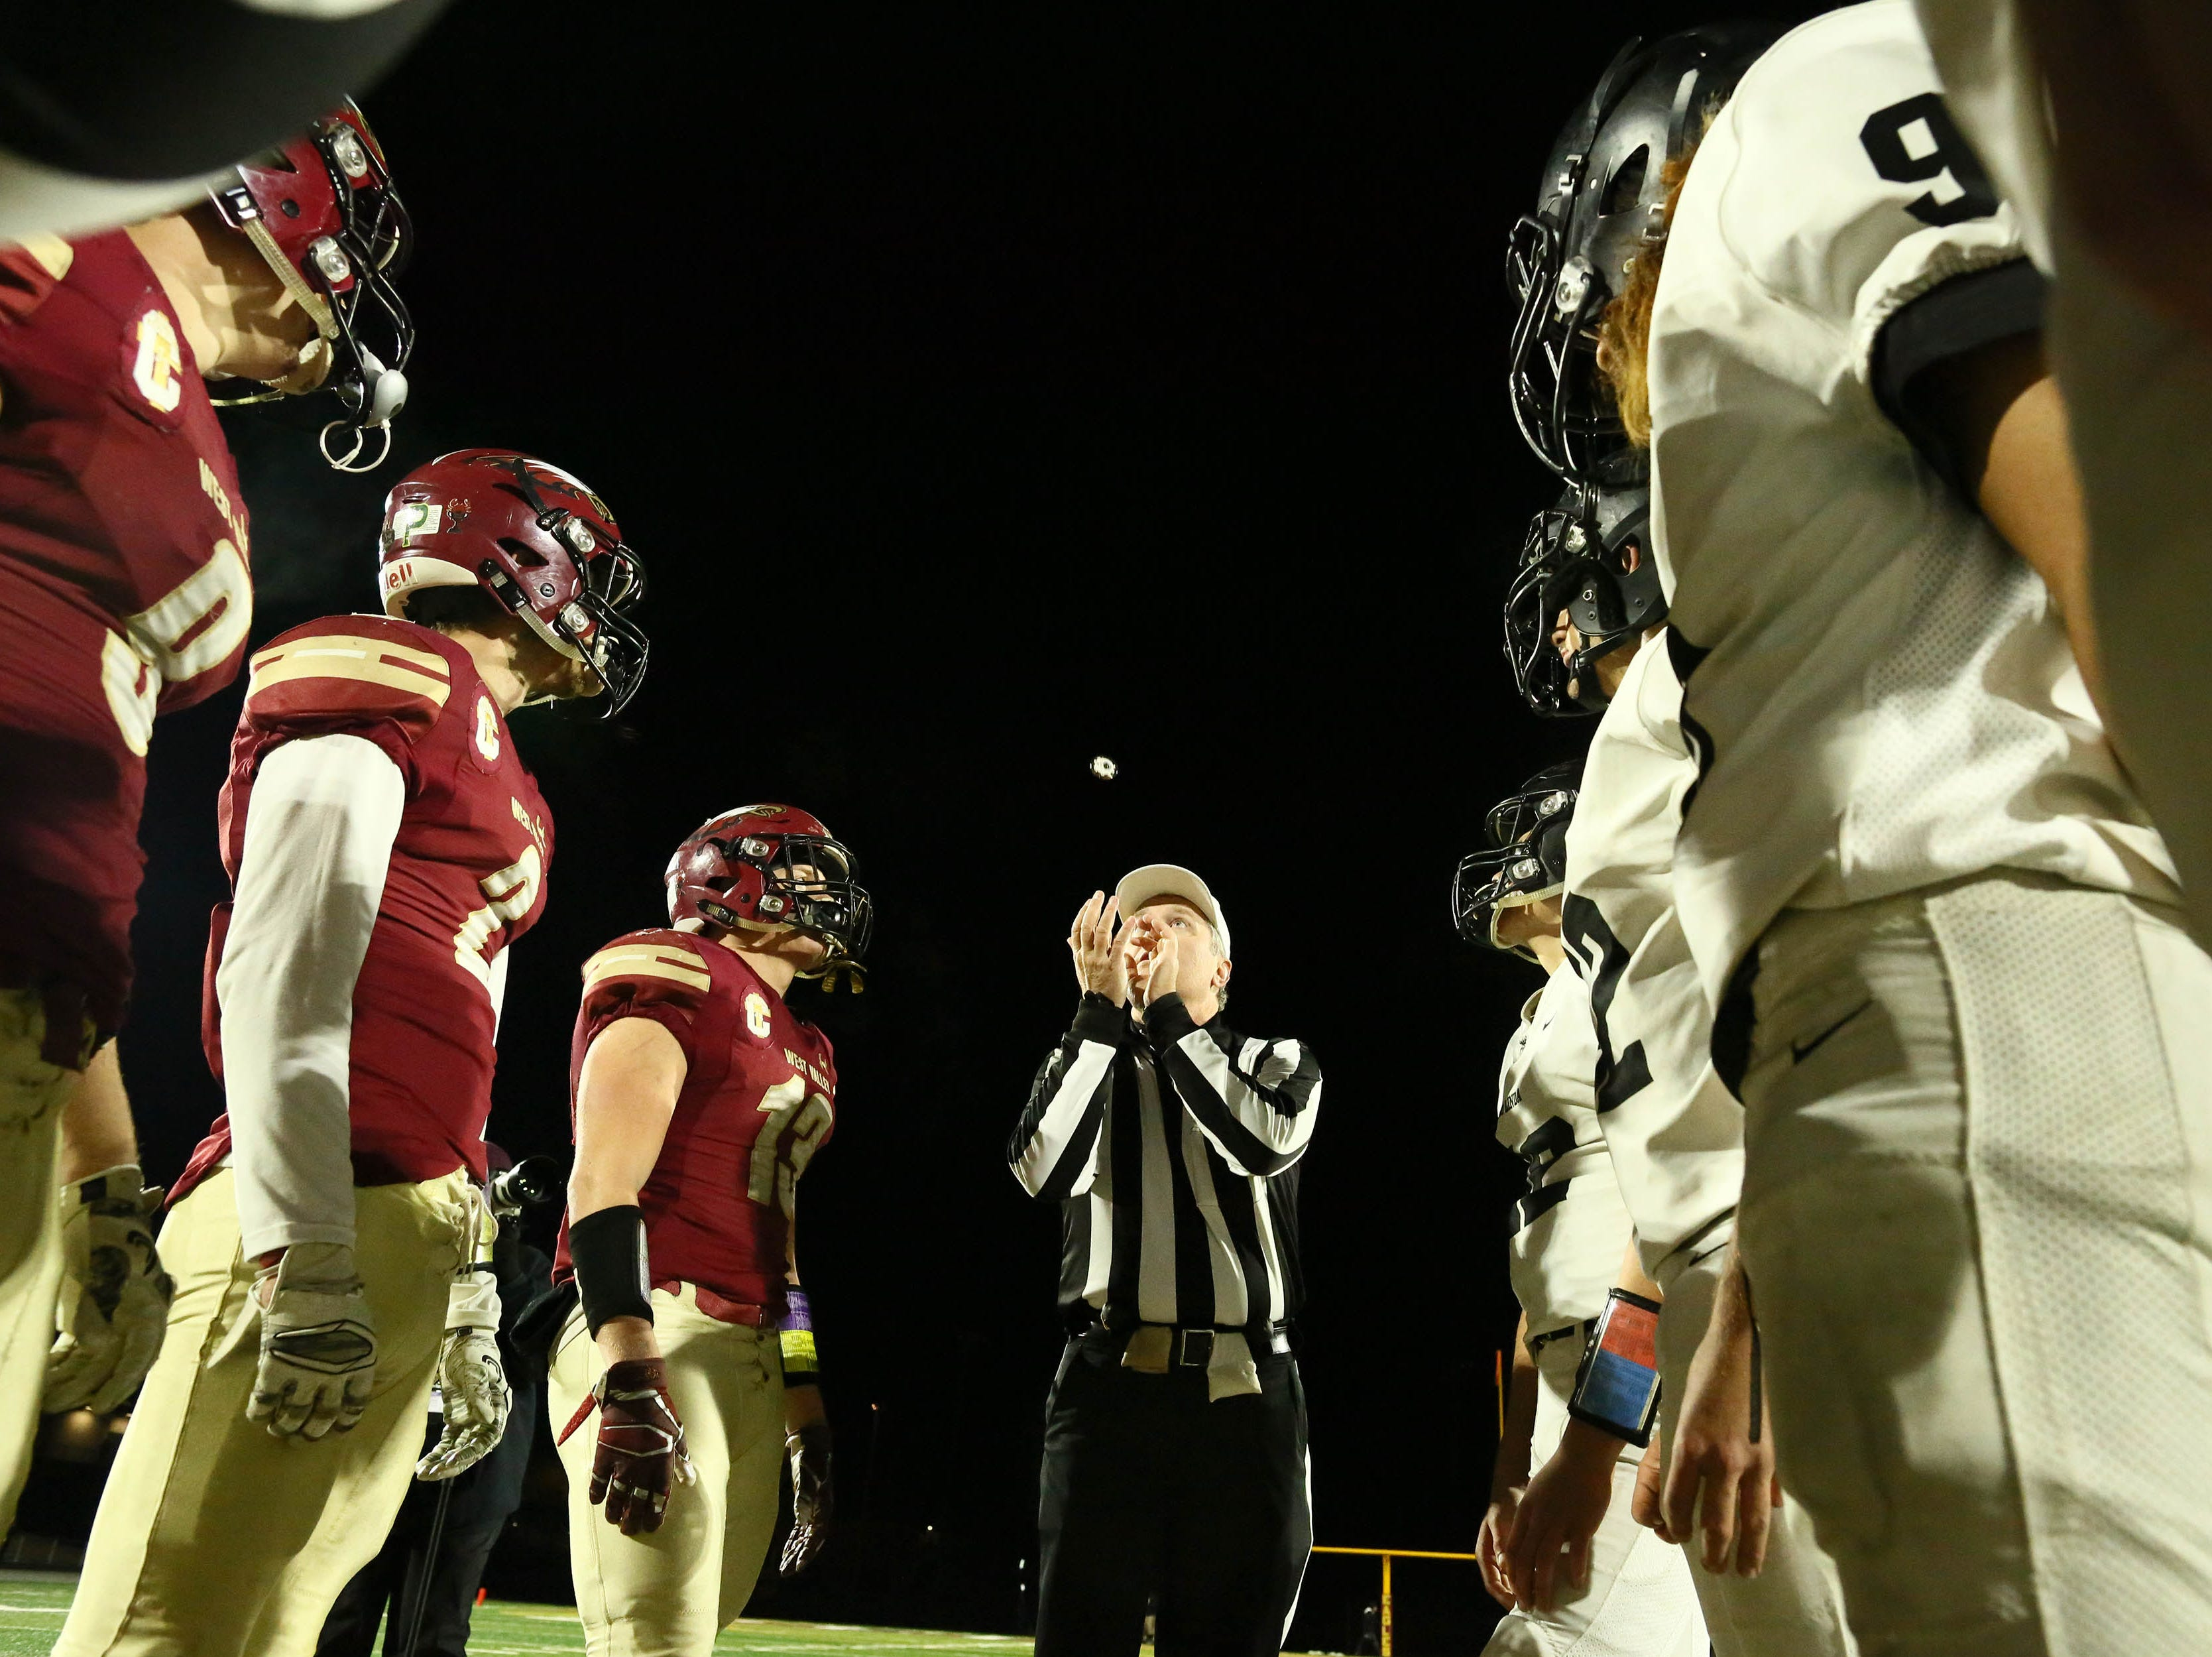 The referee tosses the coin before the game begins on Friday night.   Rio Linda beat the Eagles, 21-13, to take the NorCal regional title for Division 5-AA in Red Bluff on Friday, Dec. 7.